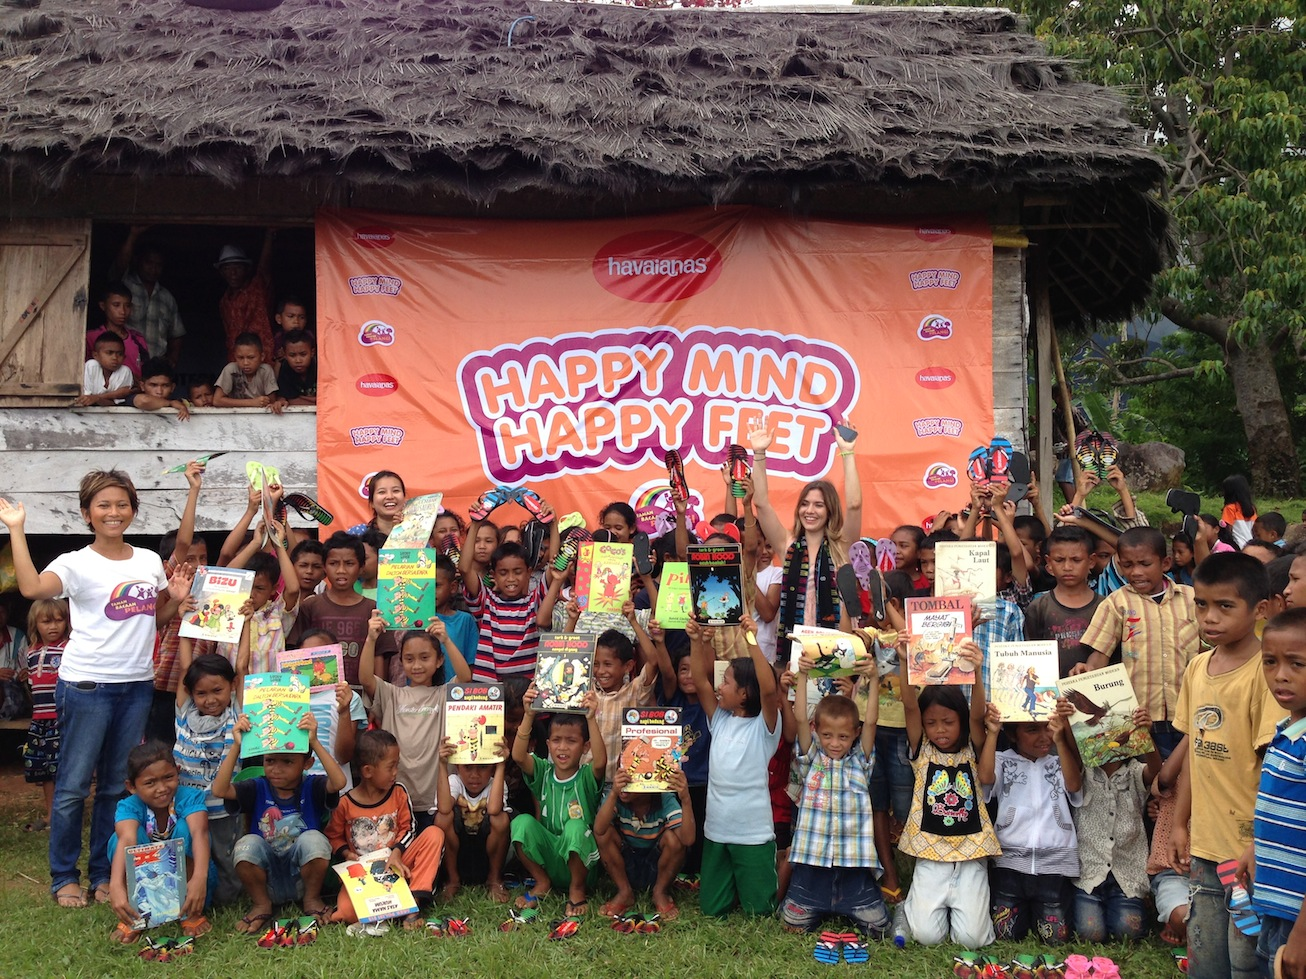 1,500 Pairs of Sandals & Hundreds of Books from Havaianas